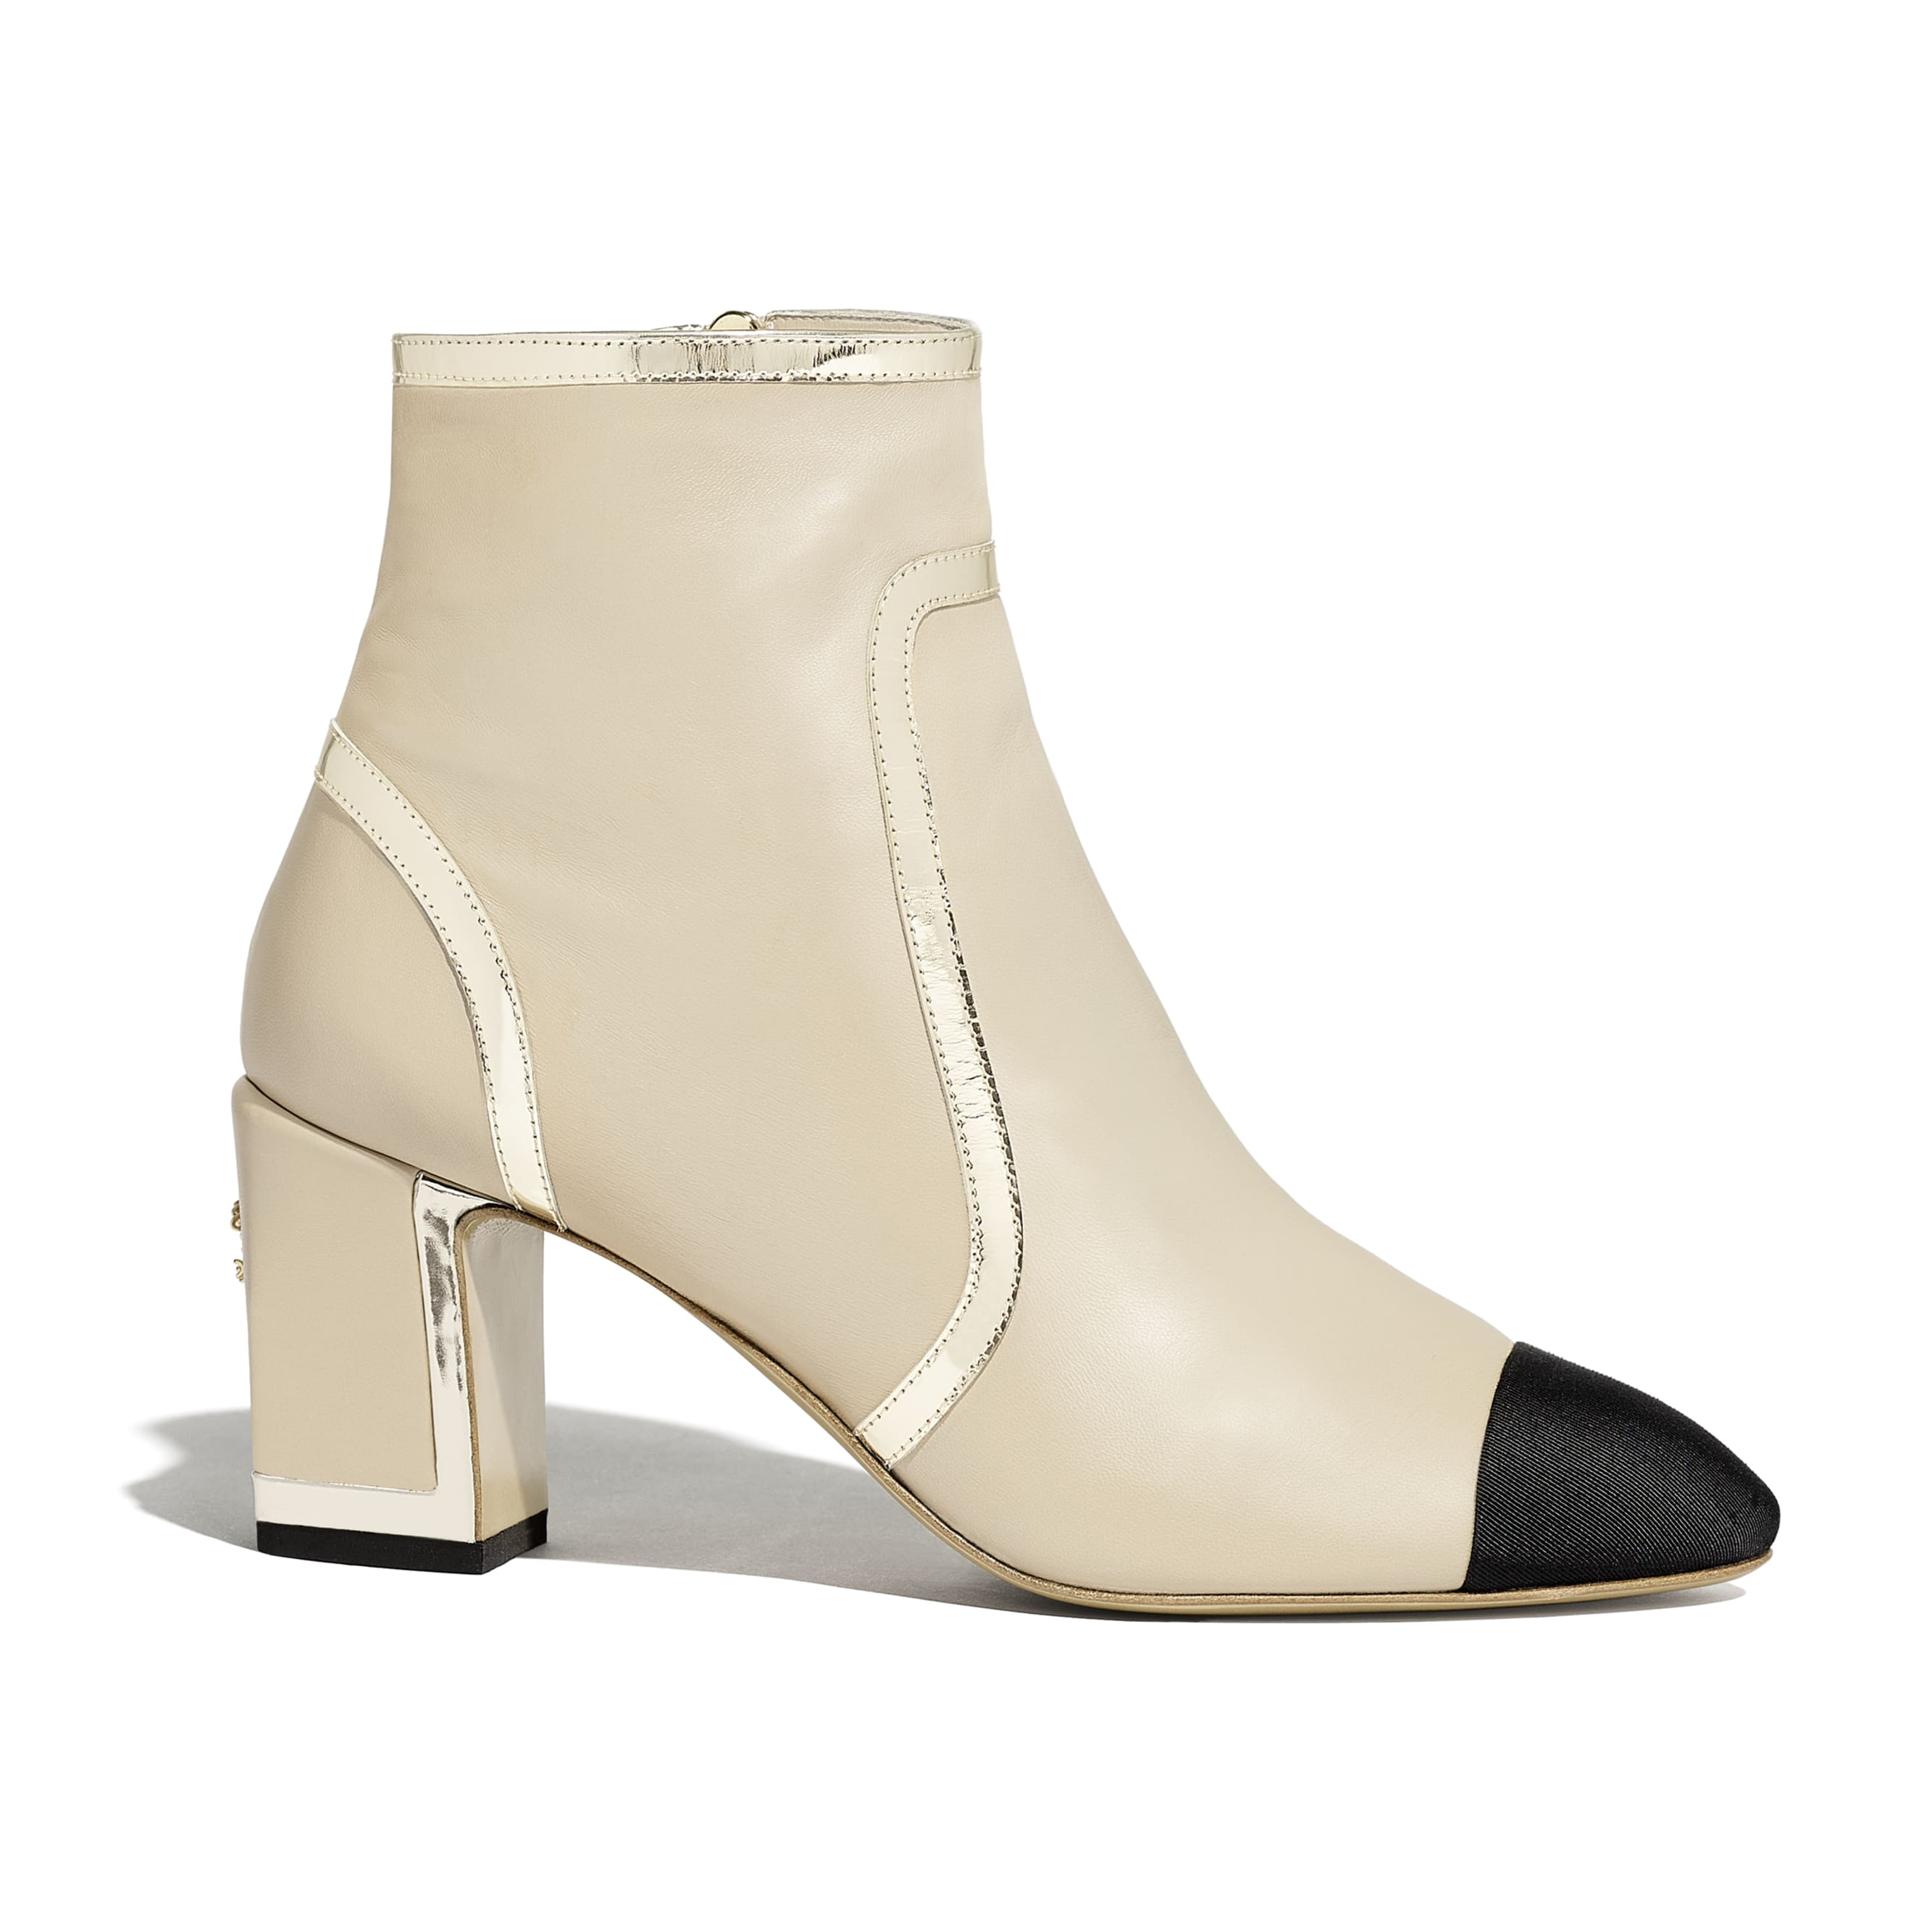 Ankle Boots - Beige & Black - Laminated Lambskin - Default view - see standard sized version